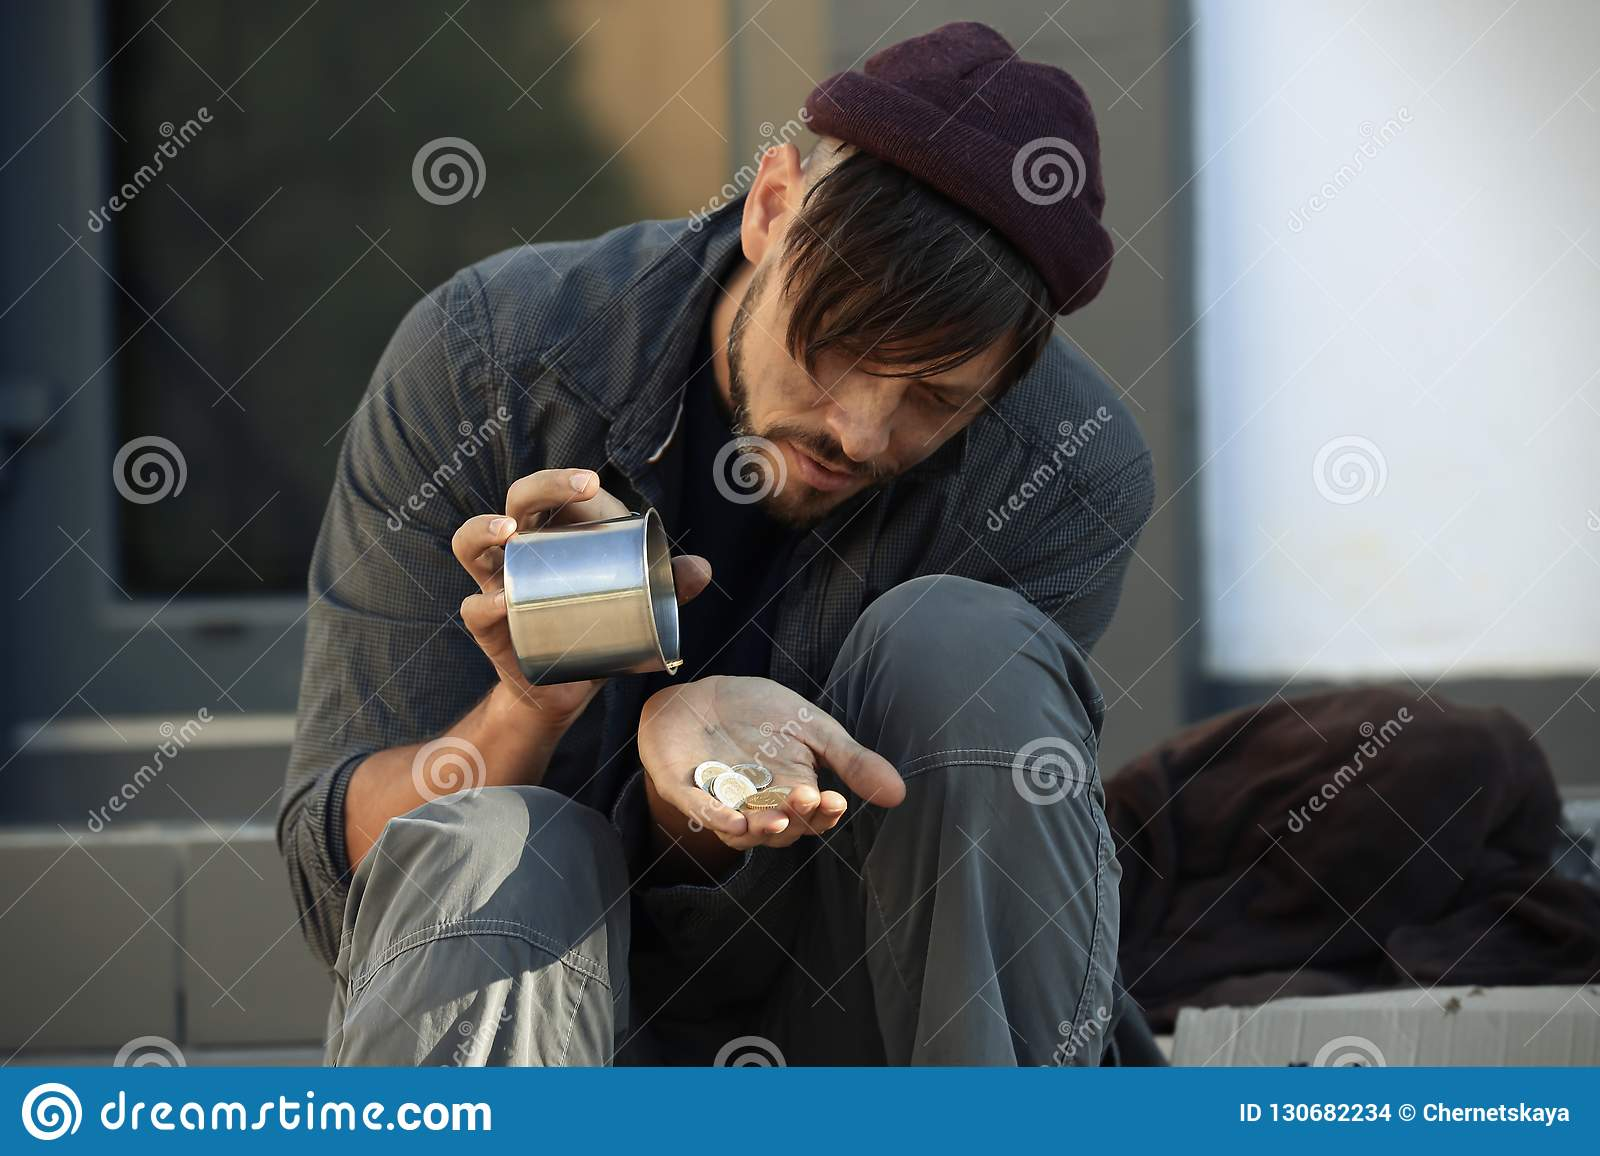 Poor man with mug counting coins